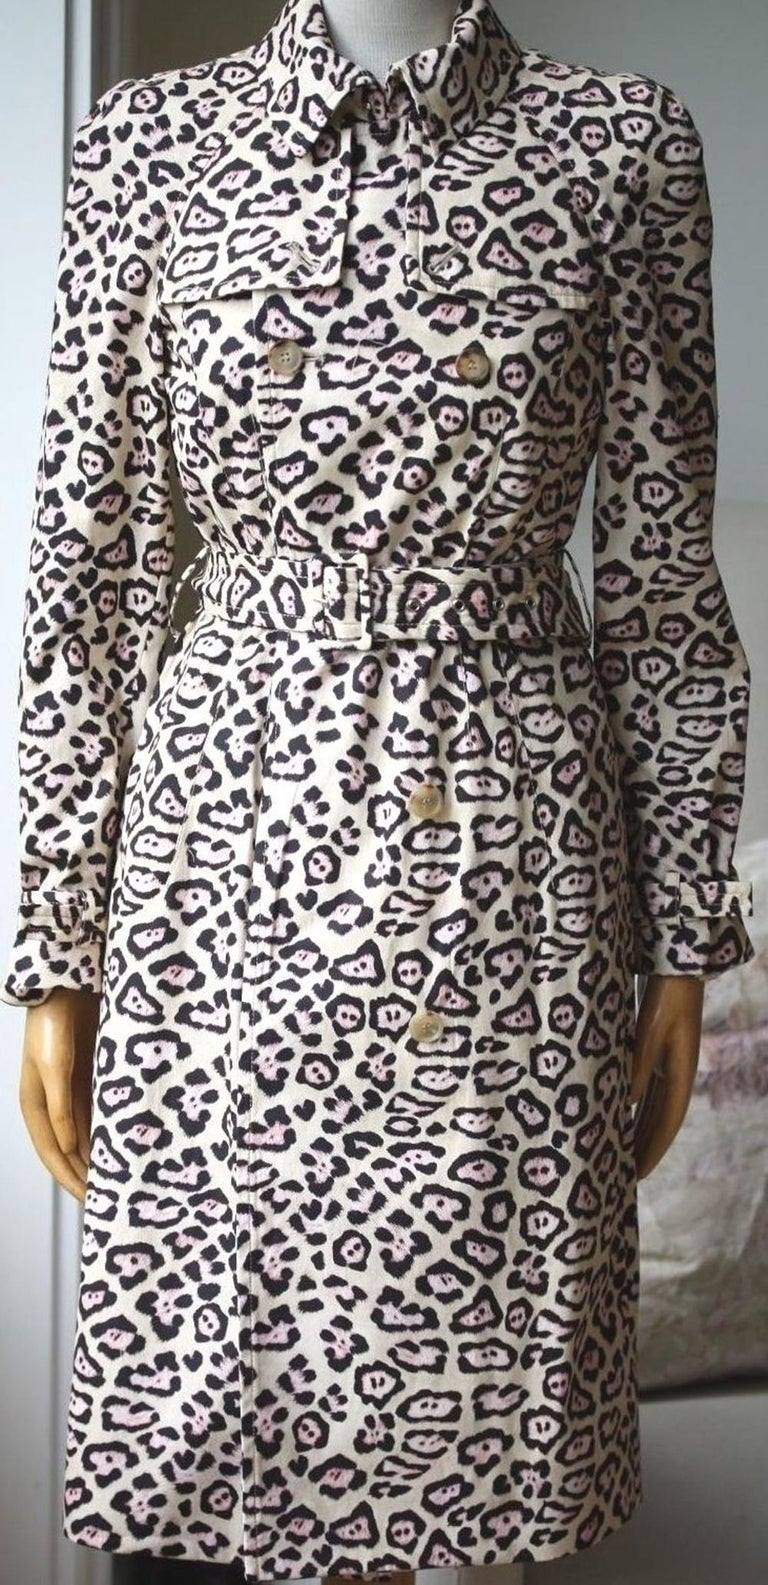 Beige, black and pink oversize leopard print coat from Givenchy featuring a drawstring hood, a concealed zip fastening, short wide sleeves, front flap pockets and a straight hem. 100% polyamide, 53% acrylic, 47% polyester, lining: 100% polyamide.